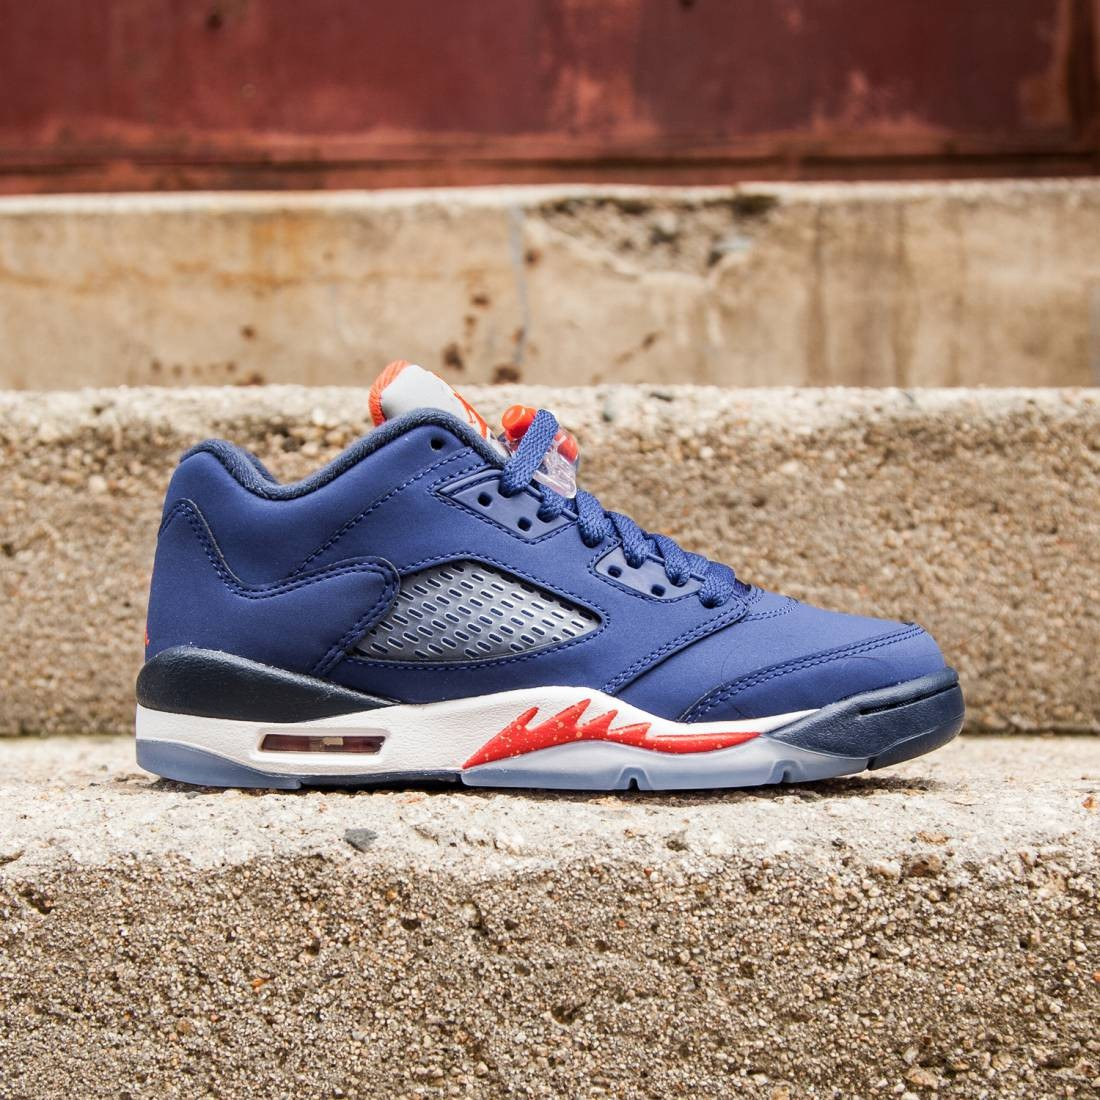 Air Jordan 5 Retro Low Knicks (GS) Big Kids (deep royal blue/midnight navy/white/team orange)